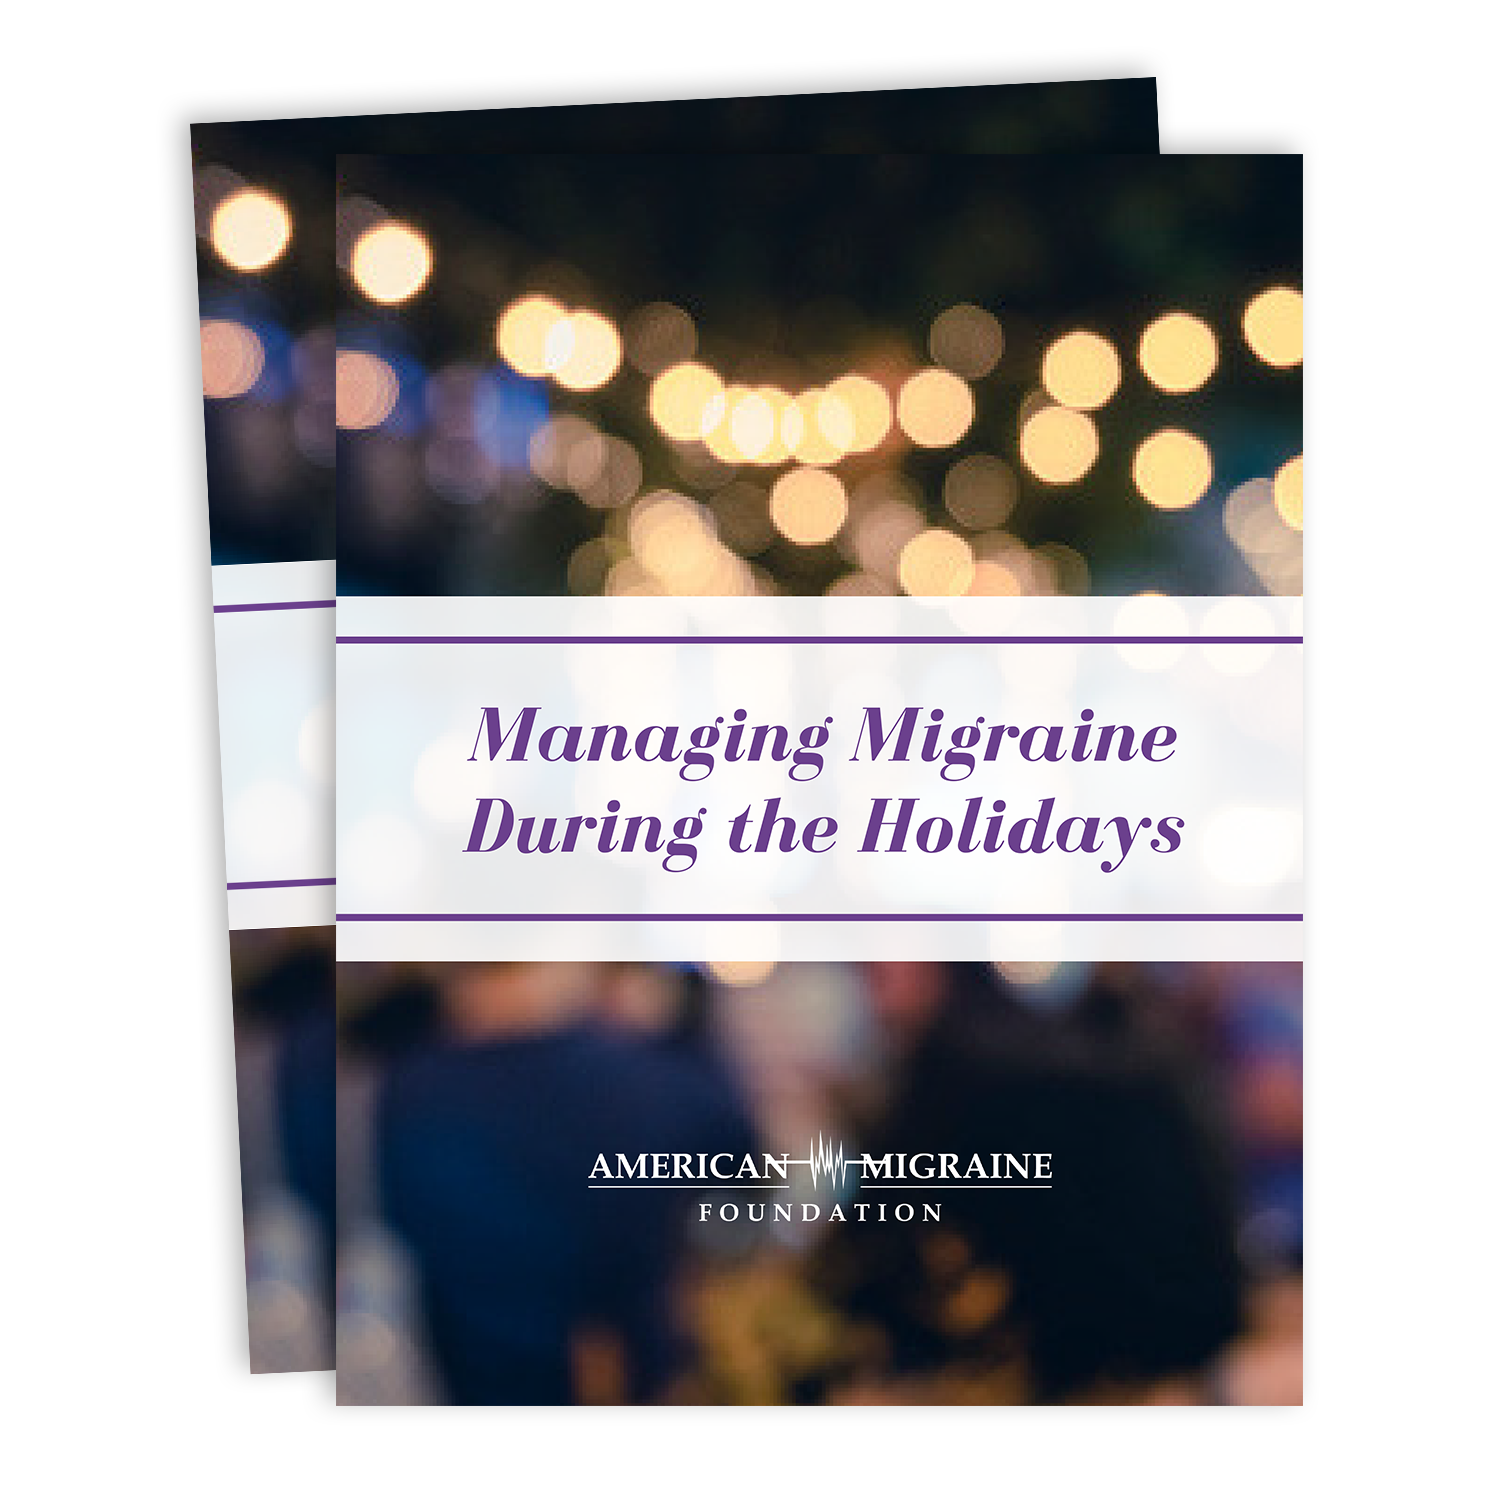 Managing Migraine During the Holidays